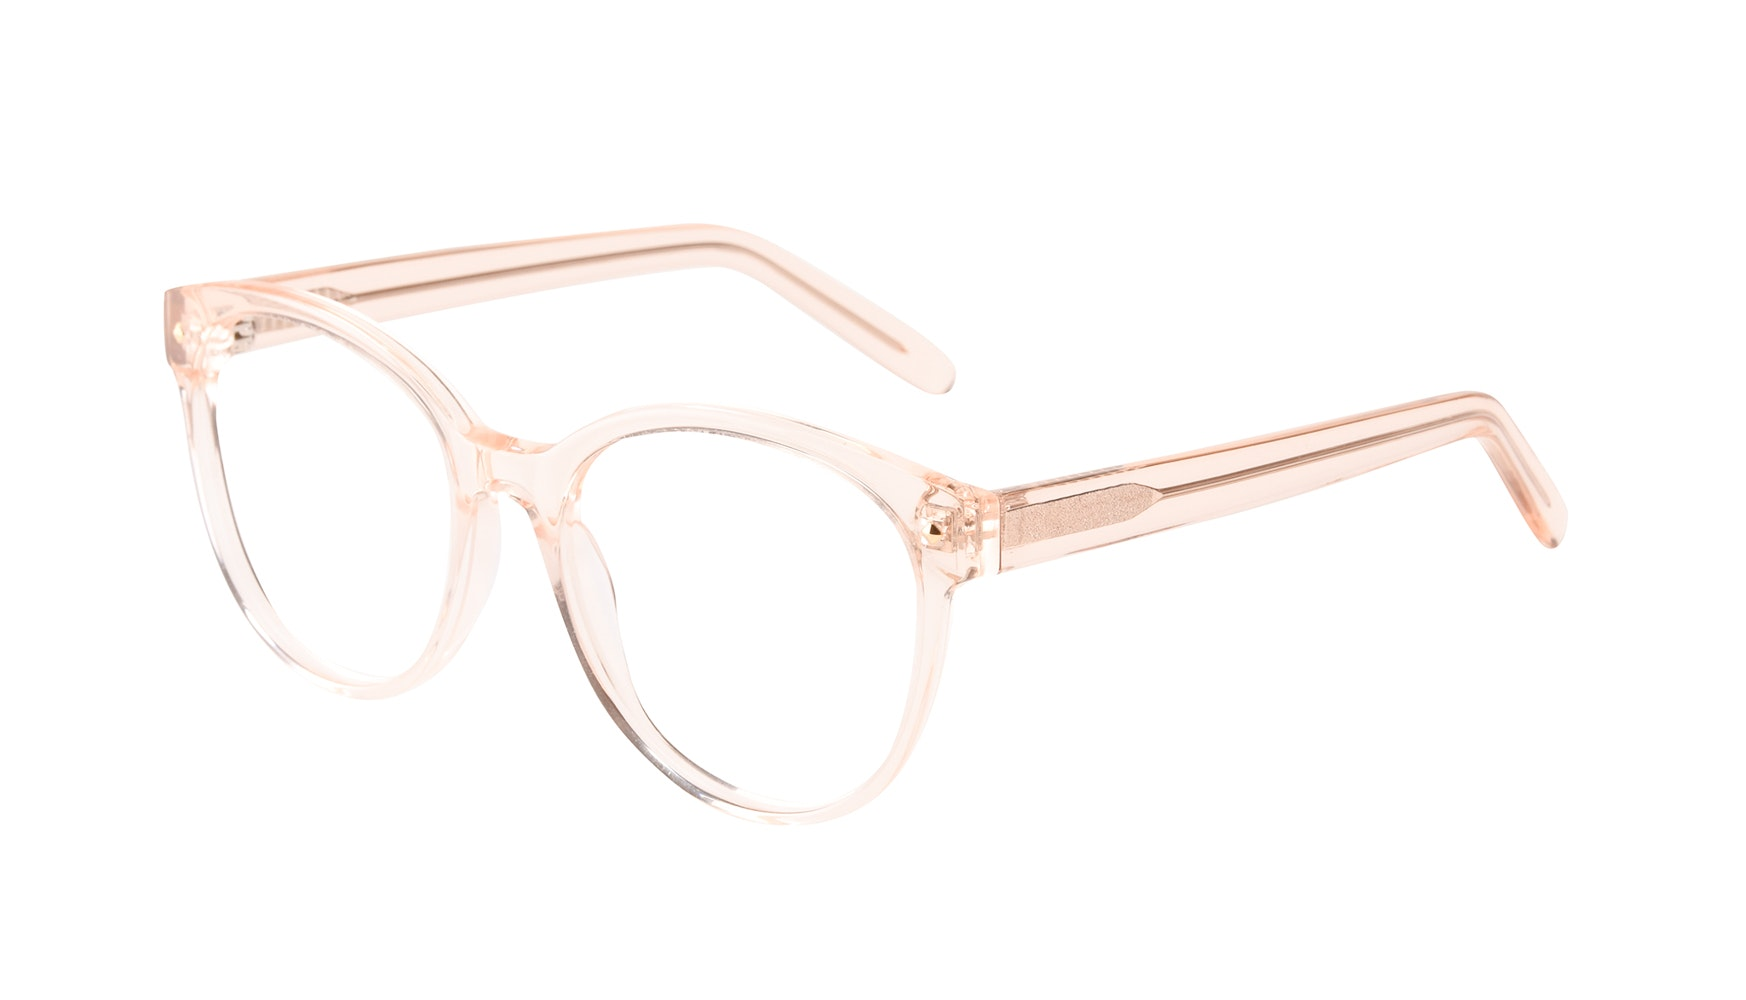 Affordable Fashion Glasses Round Eyeglasses Women Eclipse Blond Tilt